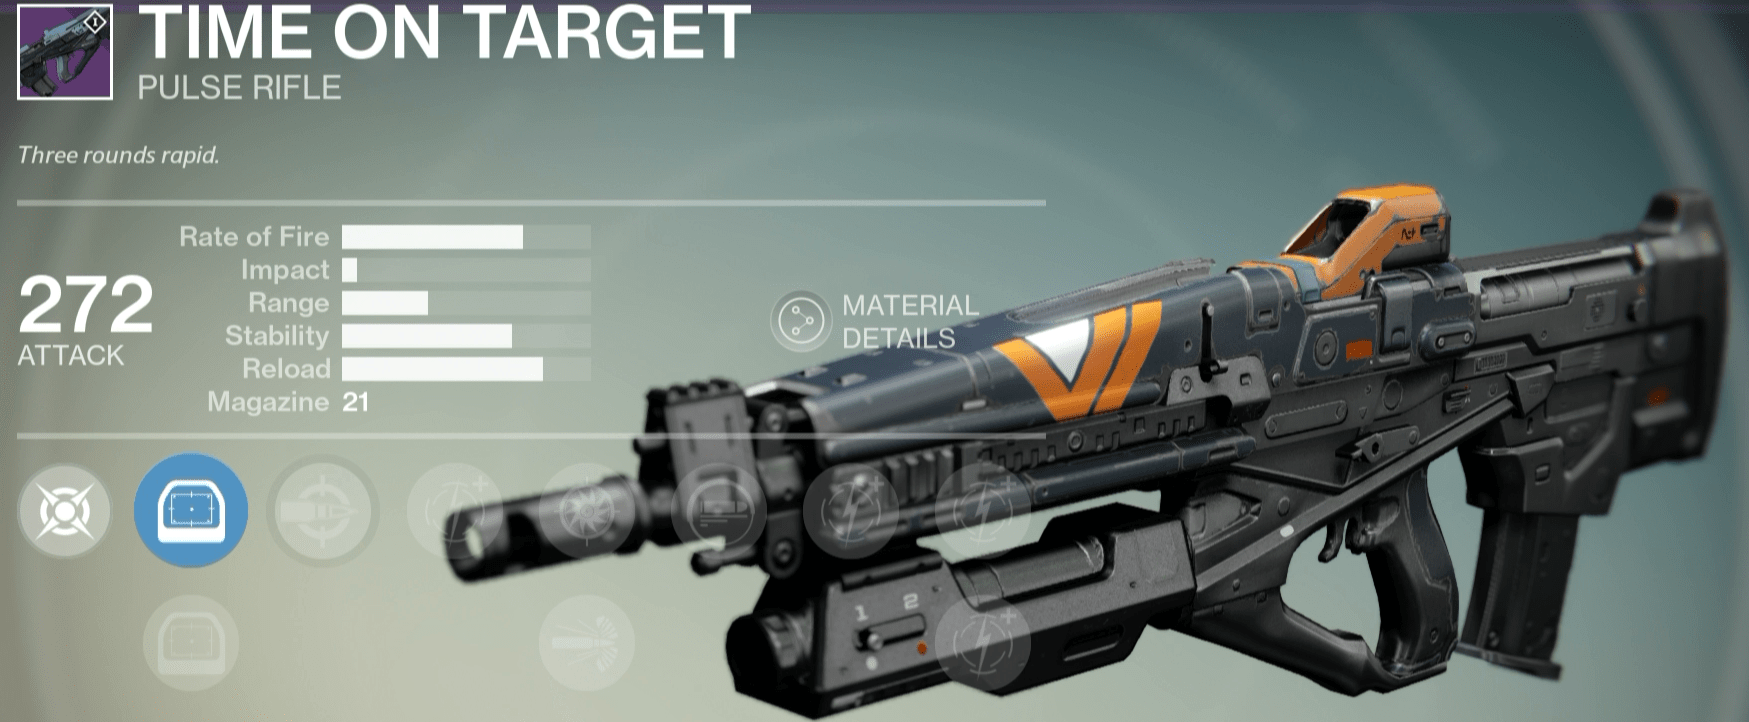 Best destiny primary weapons as of july 2015 - This Is An Incredibly Comfortable Weapon To Use Its Frame Is Non Obstructive And Makes Acquiring Targets While Aiming Very Easy Making It A Desirable